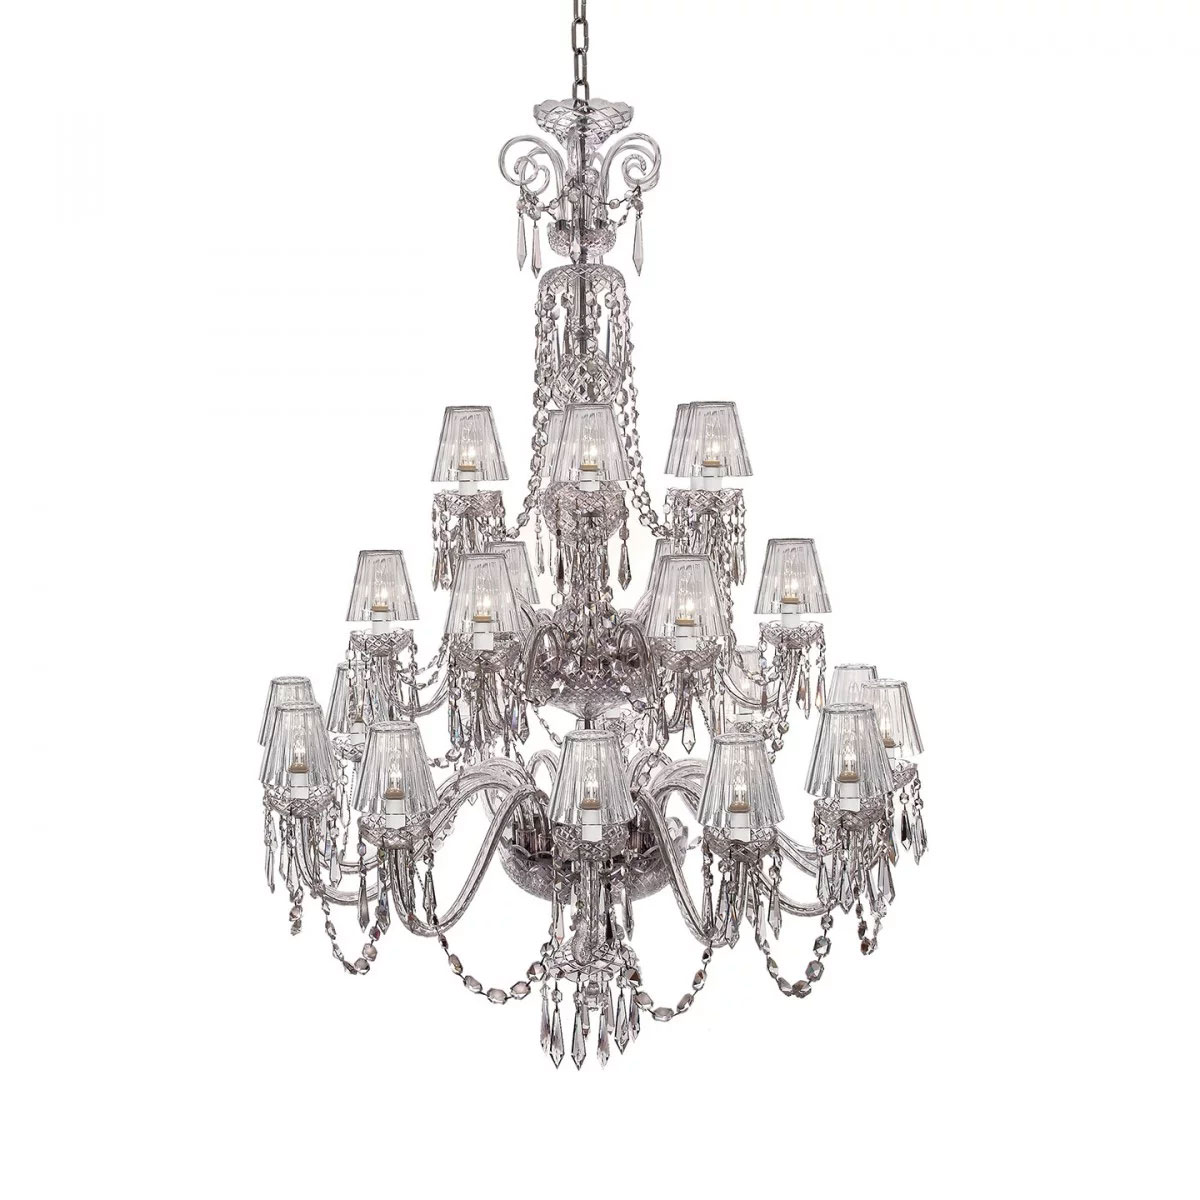 Waterford Ardmore 24 Arm Chandelier with Crystal Shades